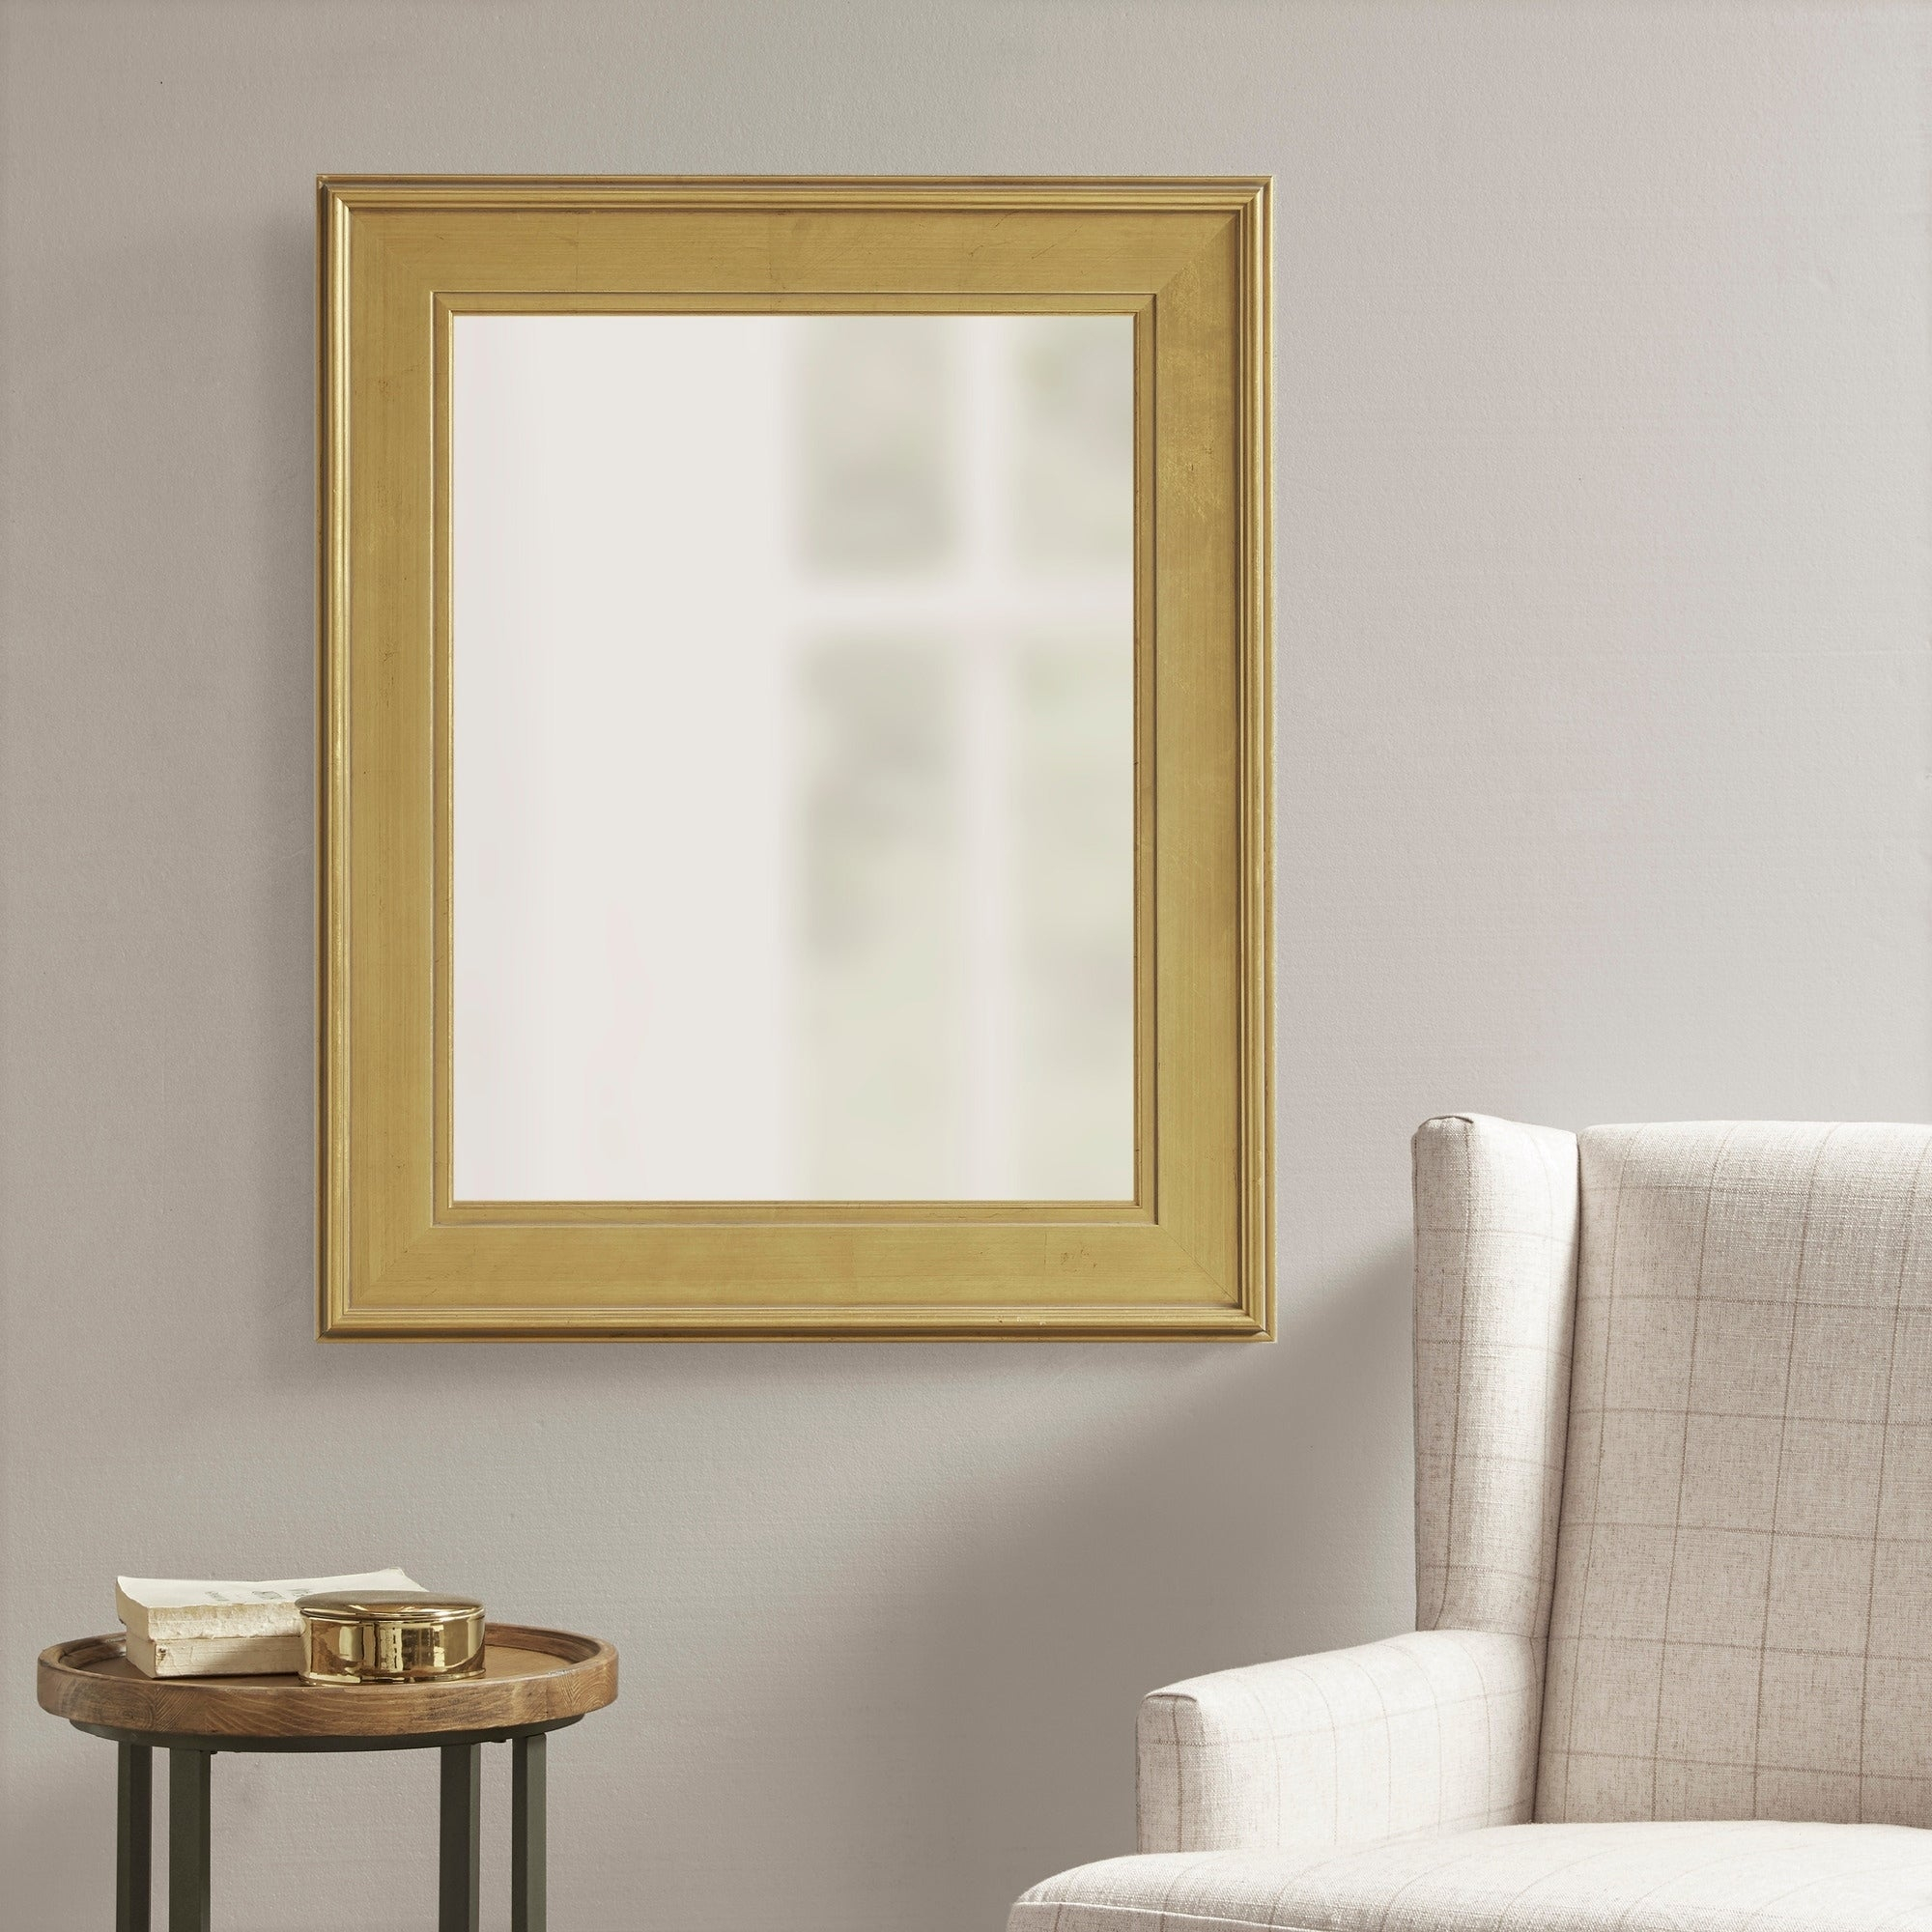 Martha Stewart Westchester Antique Gold Rectangle Accent Mirror – Antique Gold With Regard To Reba Accent Wall Mirrors (View 13 of 20)